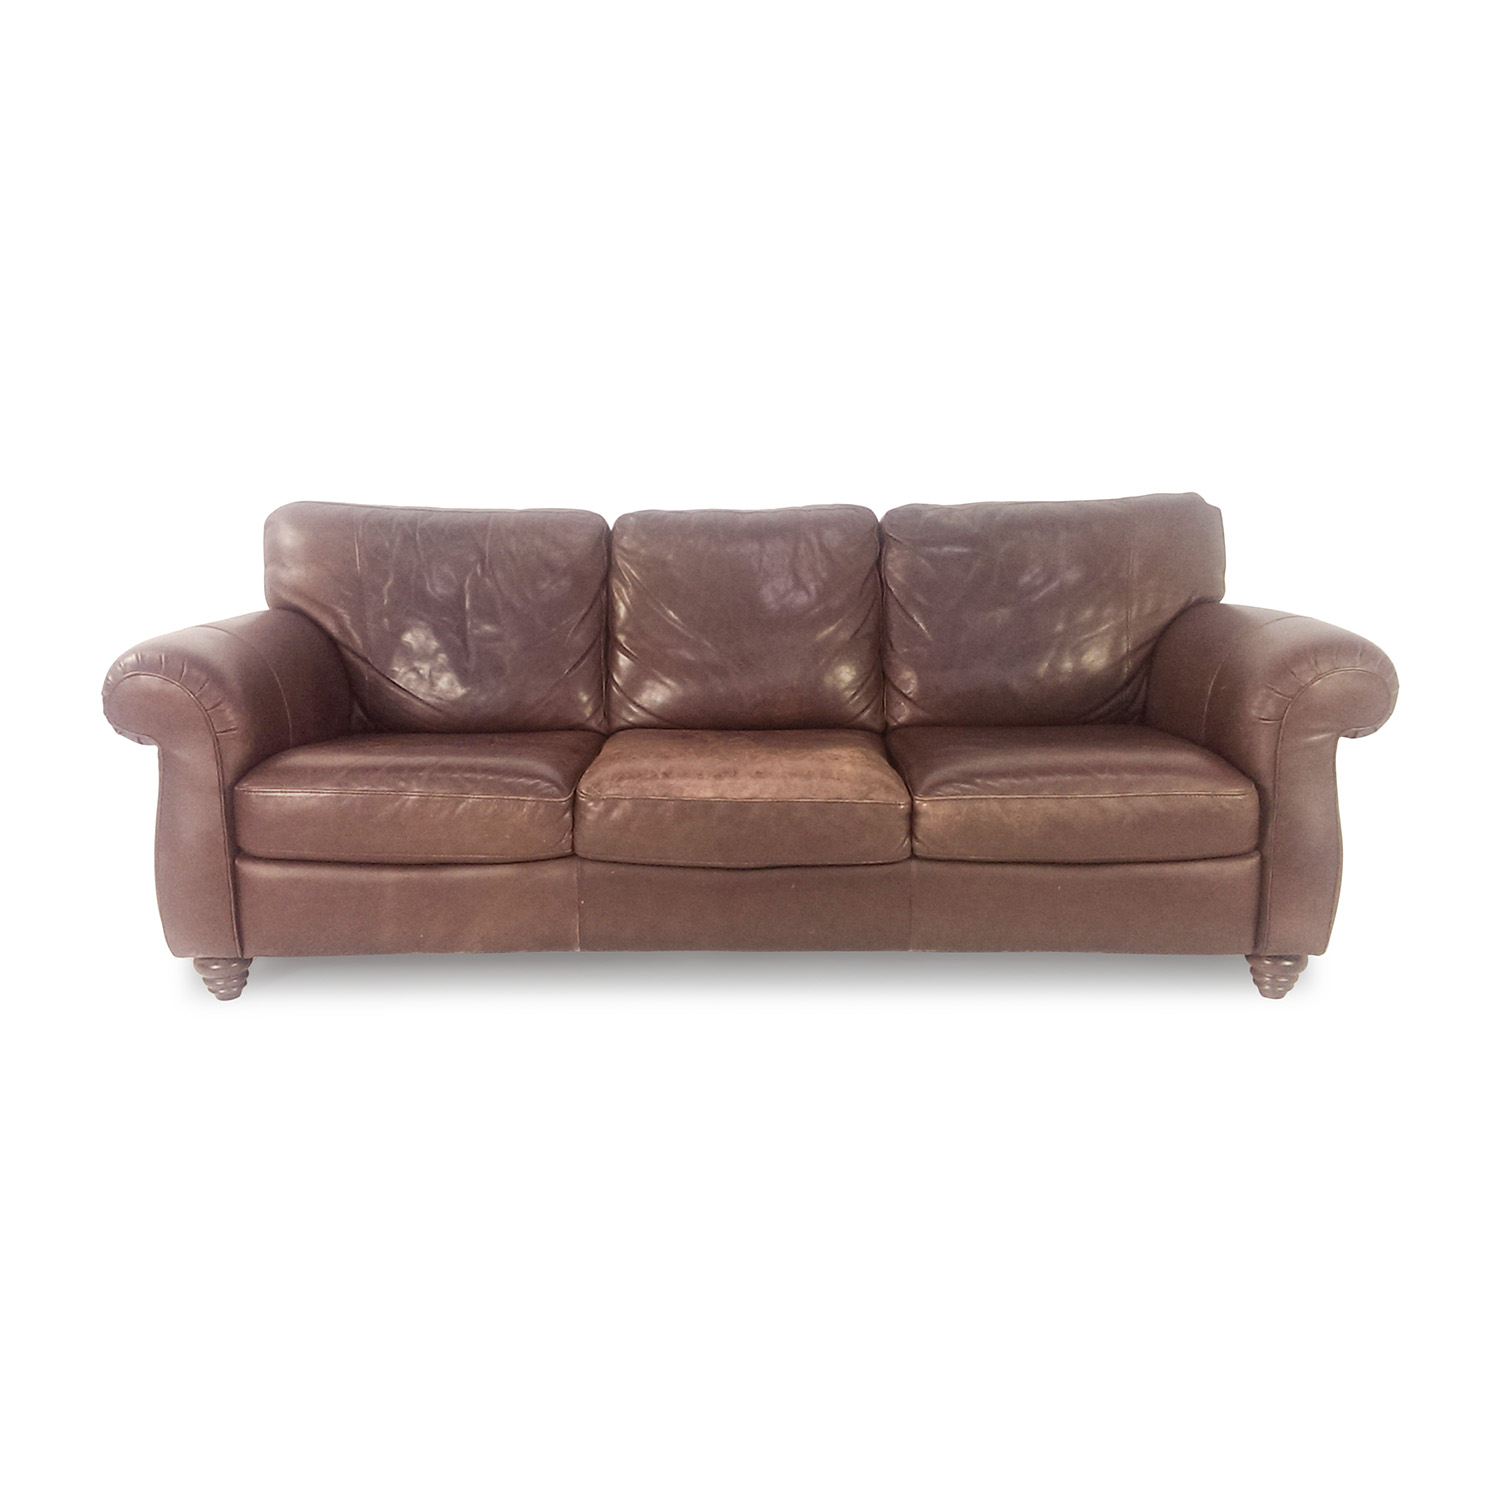 85 off natuzzi natuzzi brown leather couch sofas - Sofas natuzzi ...